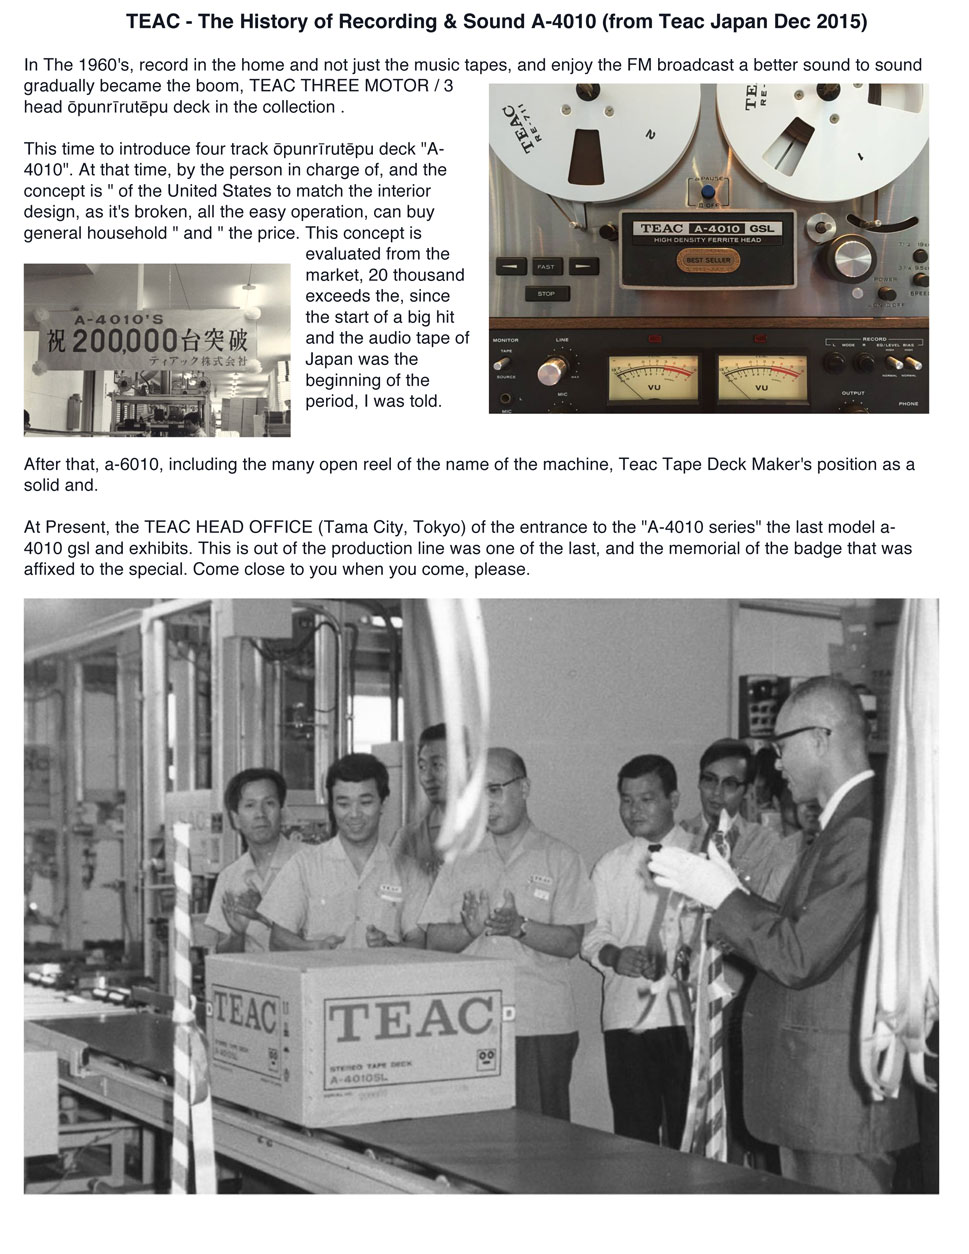 translated Teac Japan posting of information about the Teac 4010S selling 200,000 units in our vintage recording collection